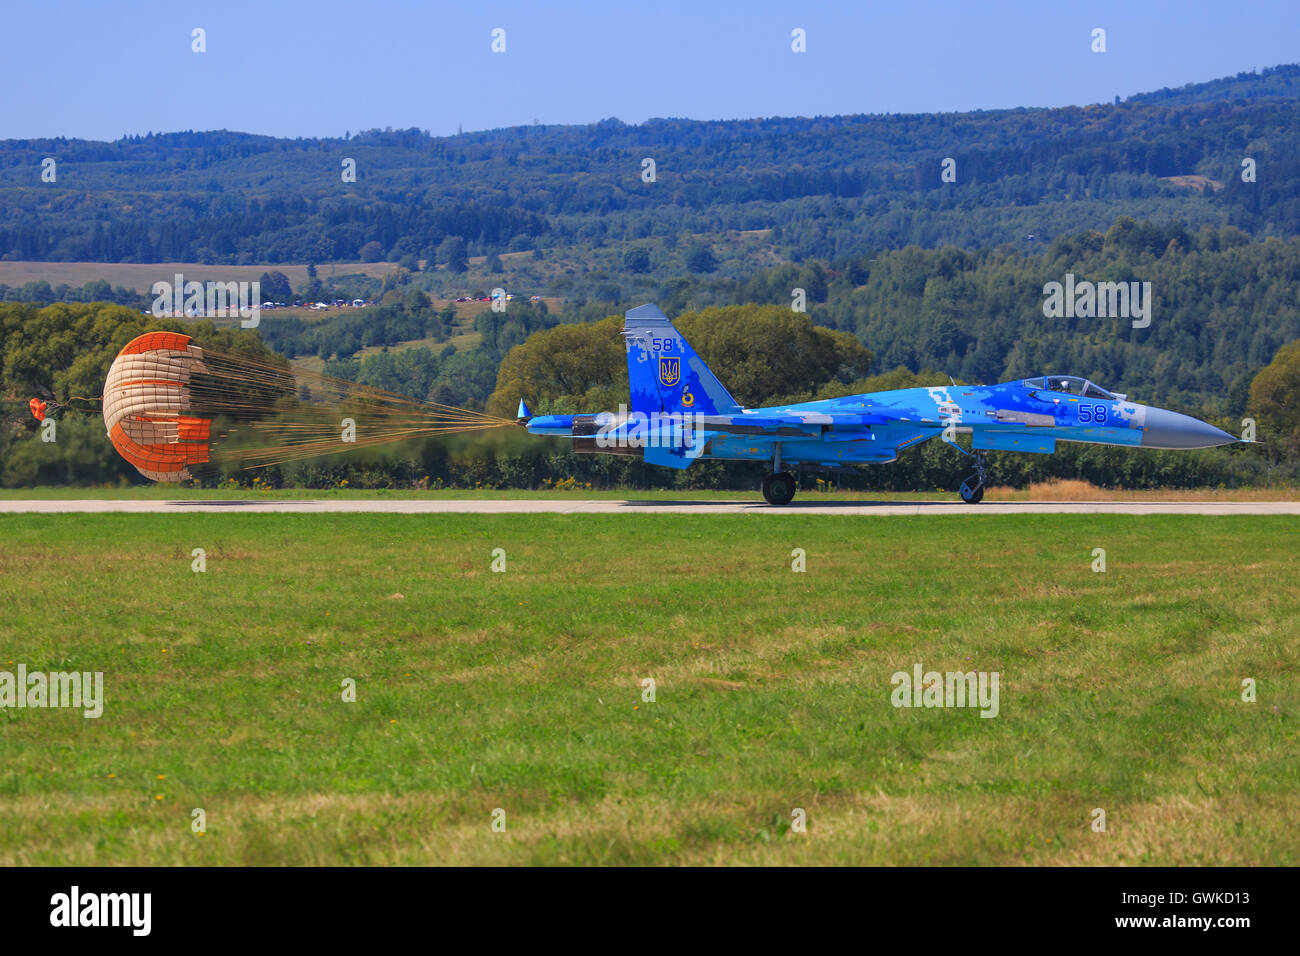 su-27 Sukhoi r at SIAF airshow in Sliac, Slovakia - Stock Image